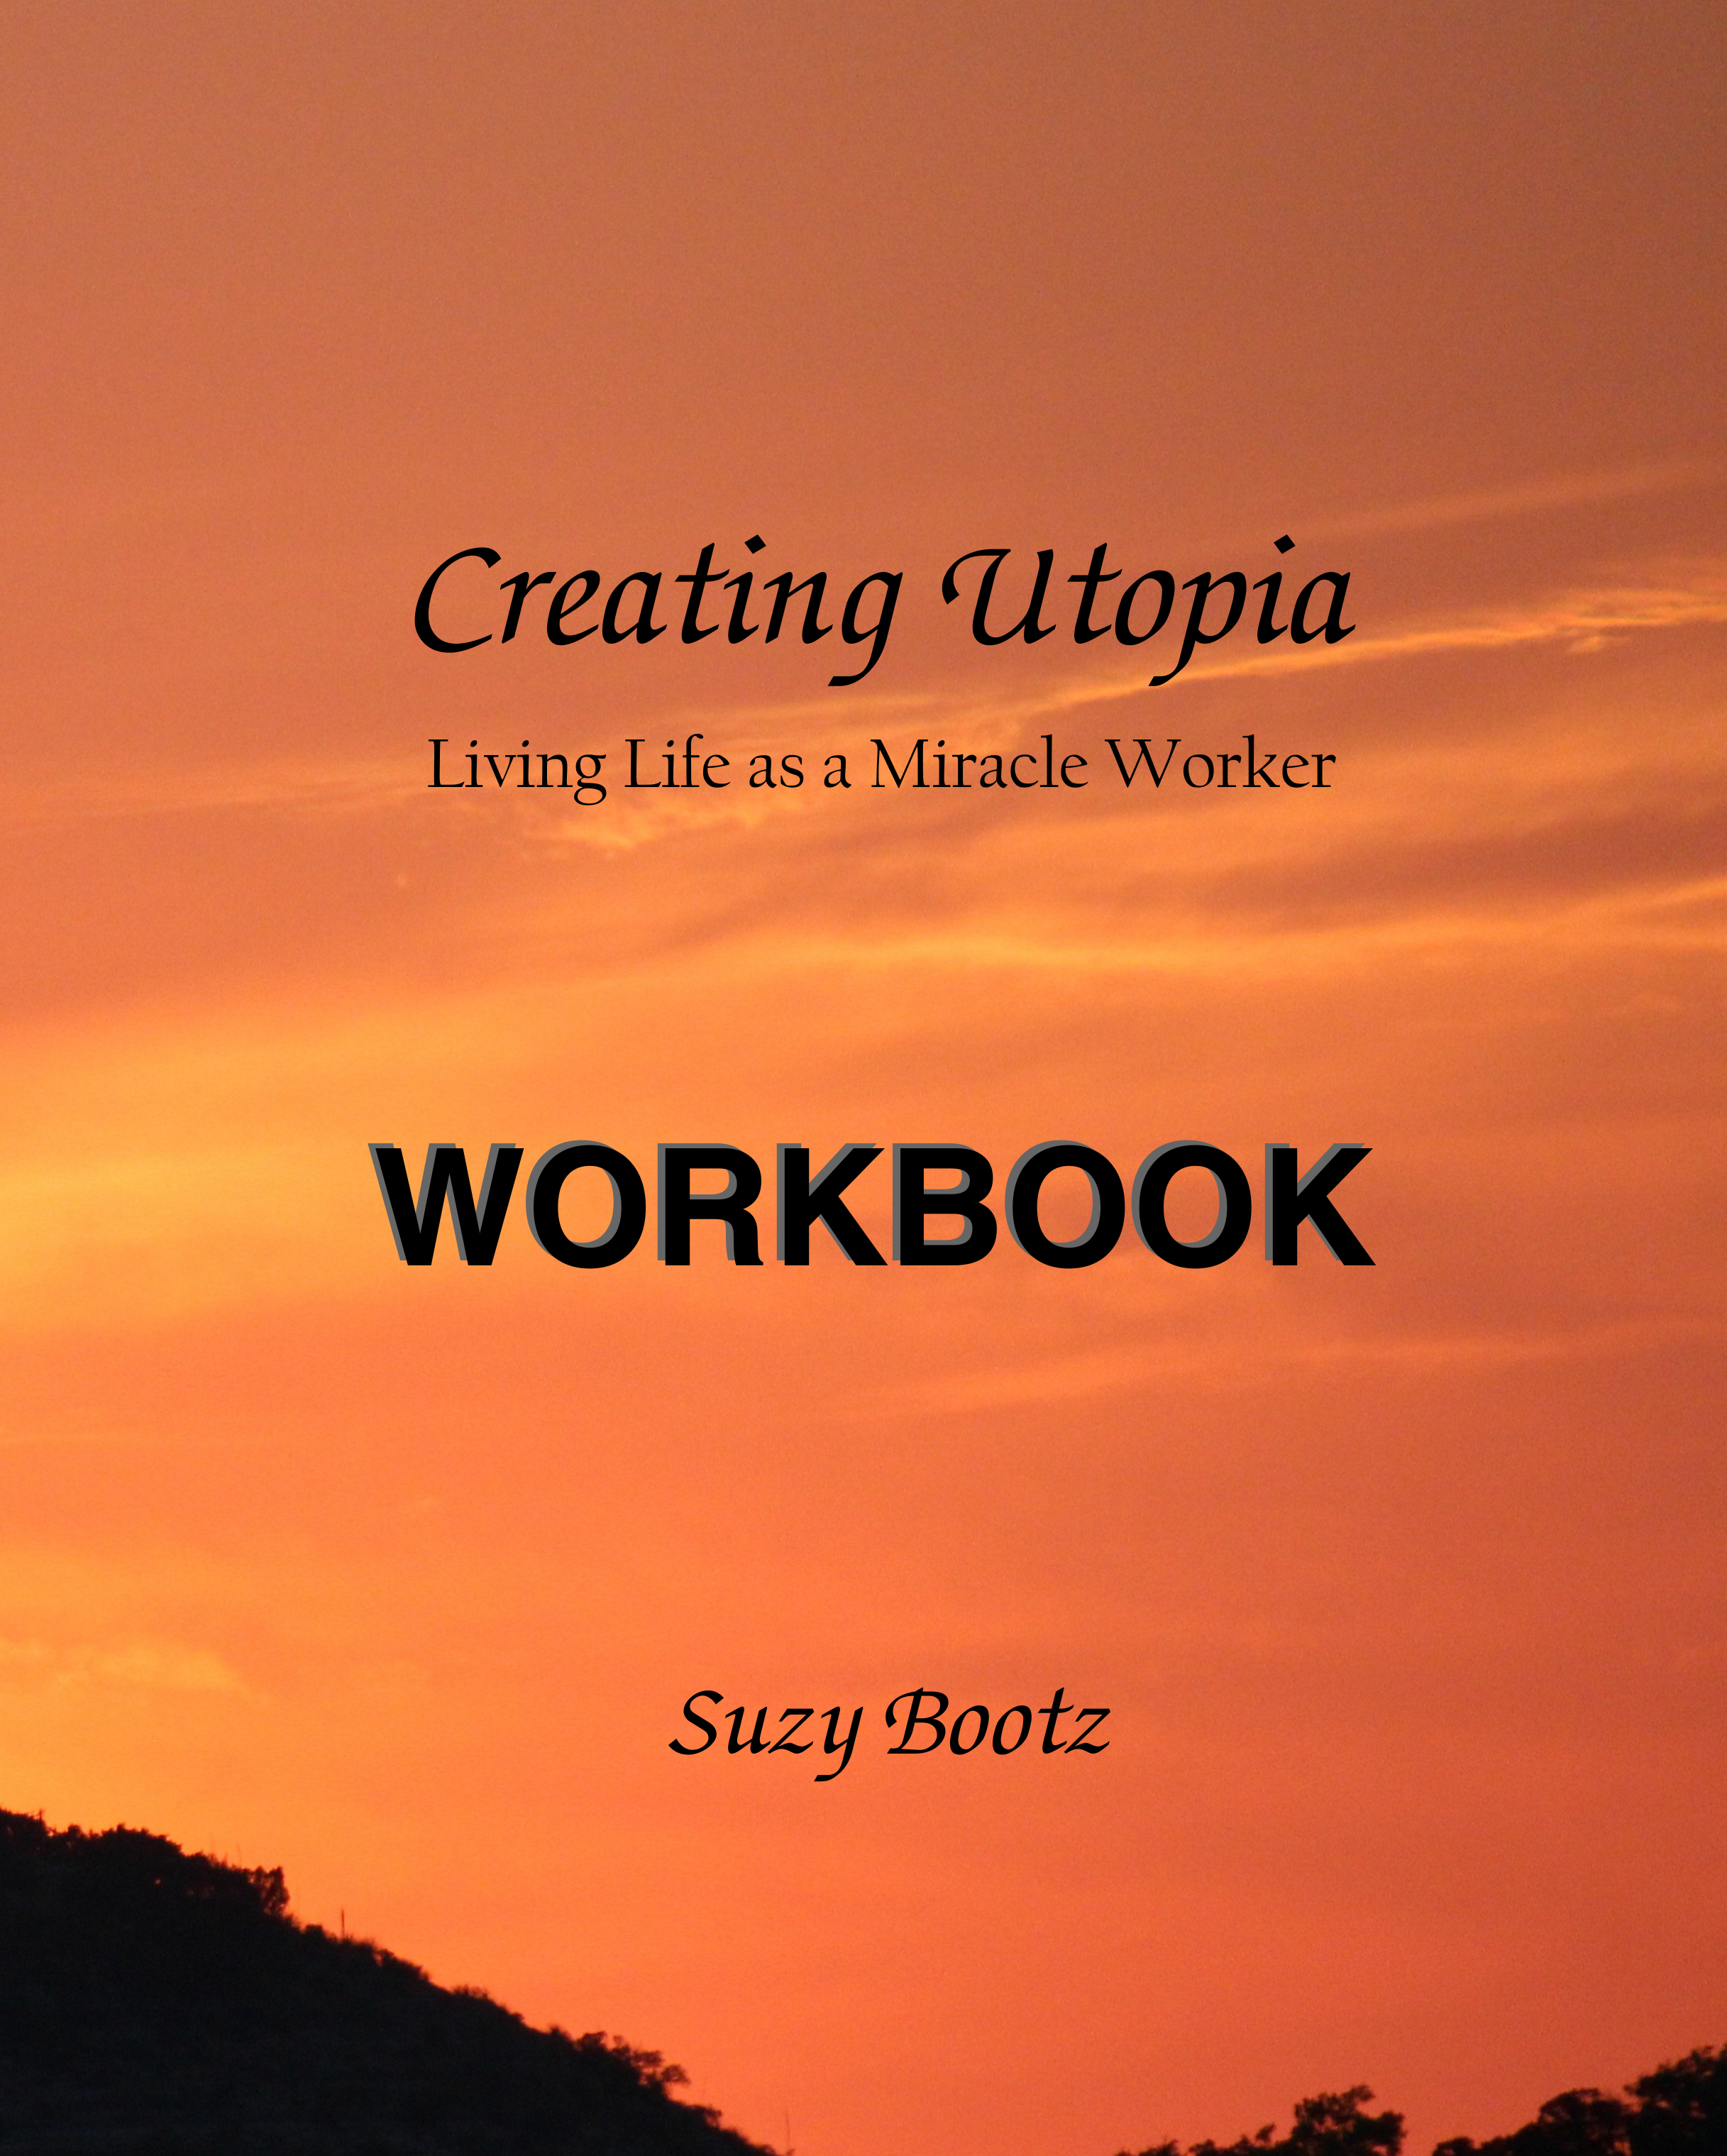 utopia_workbook_front_cover